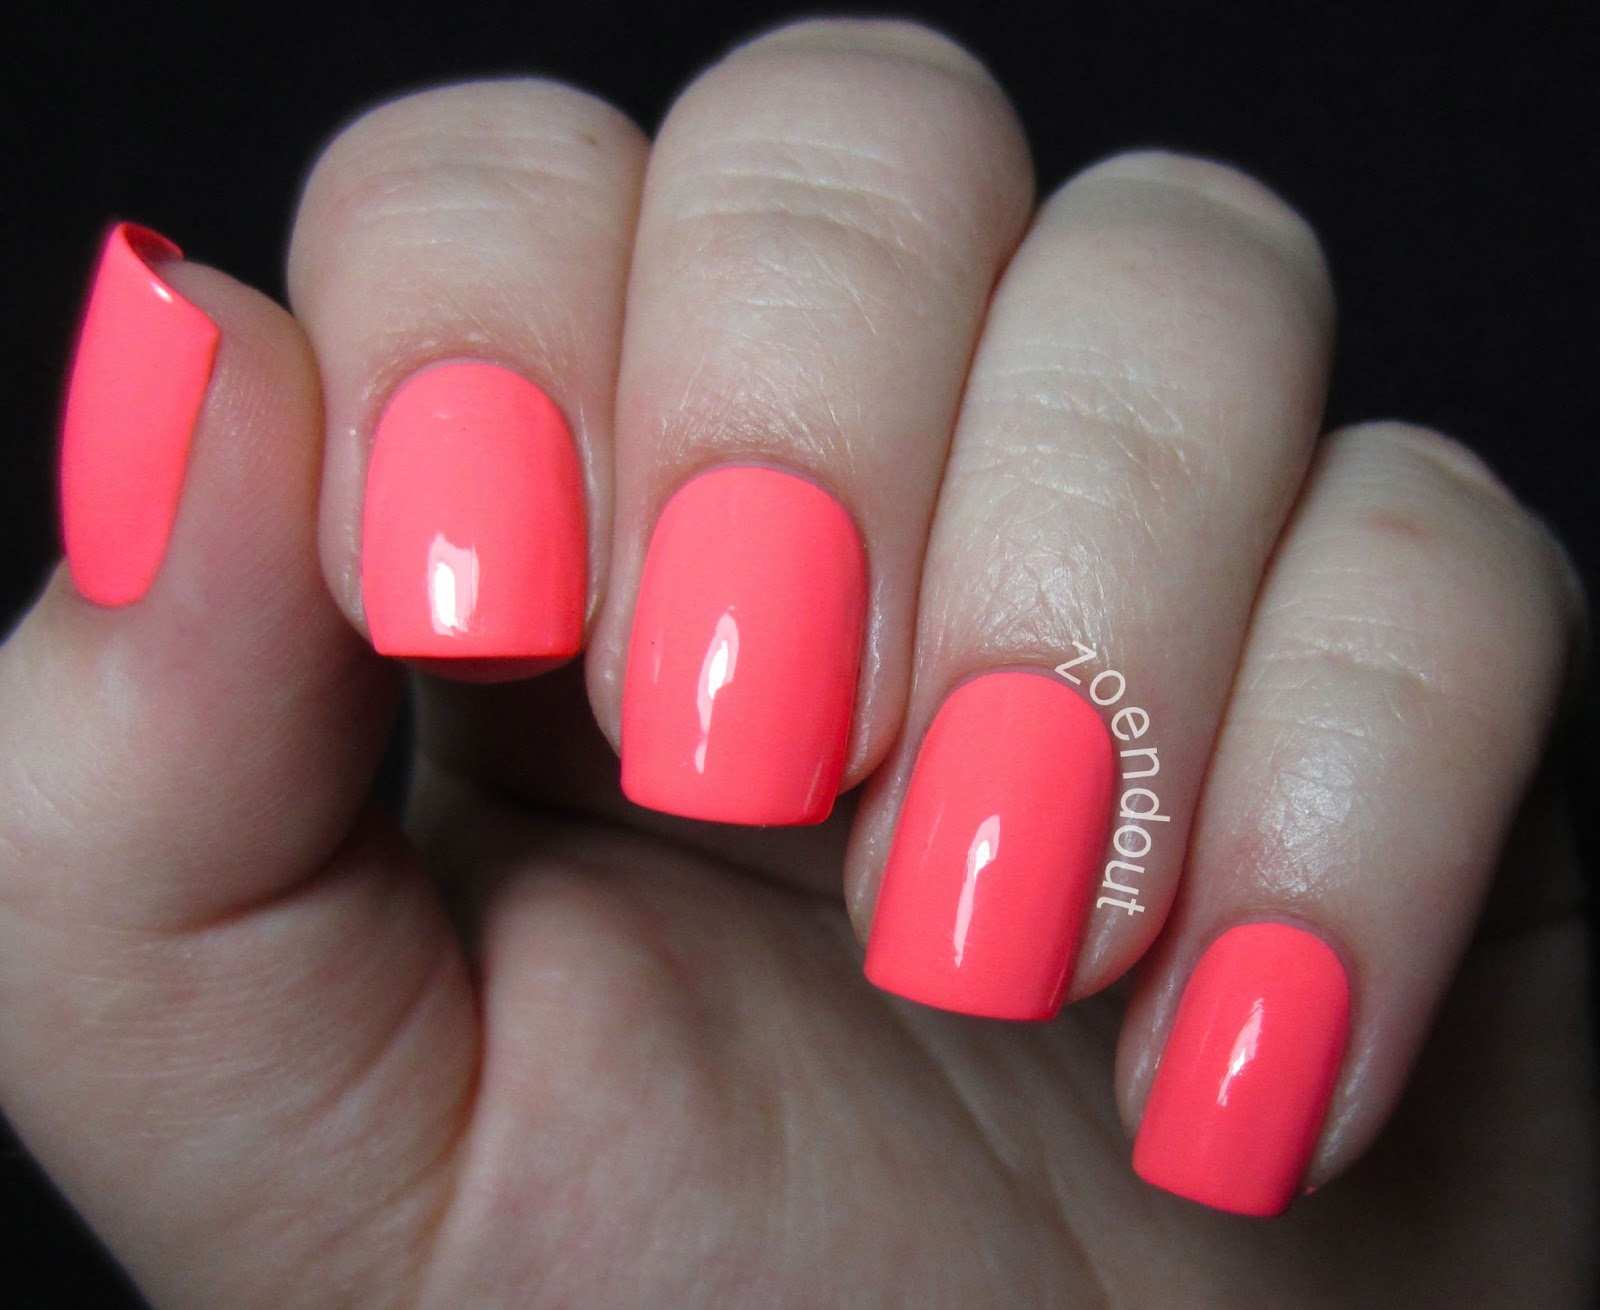 Zoendout Nails: Quick! Guess the color!